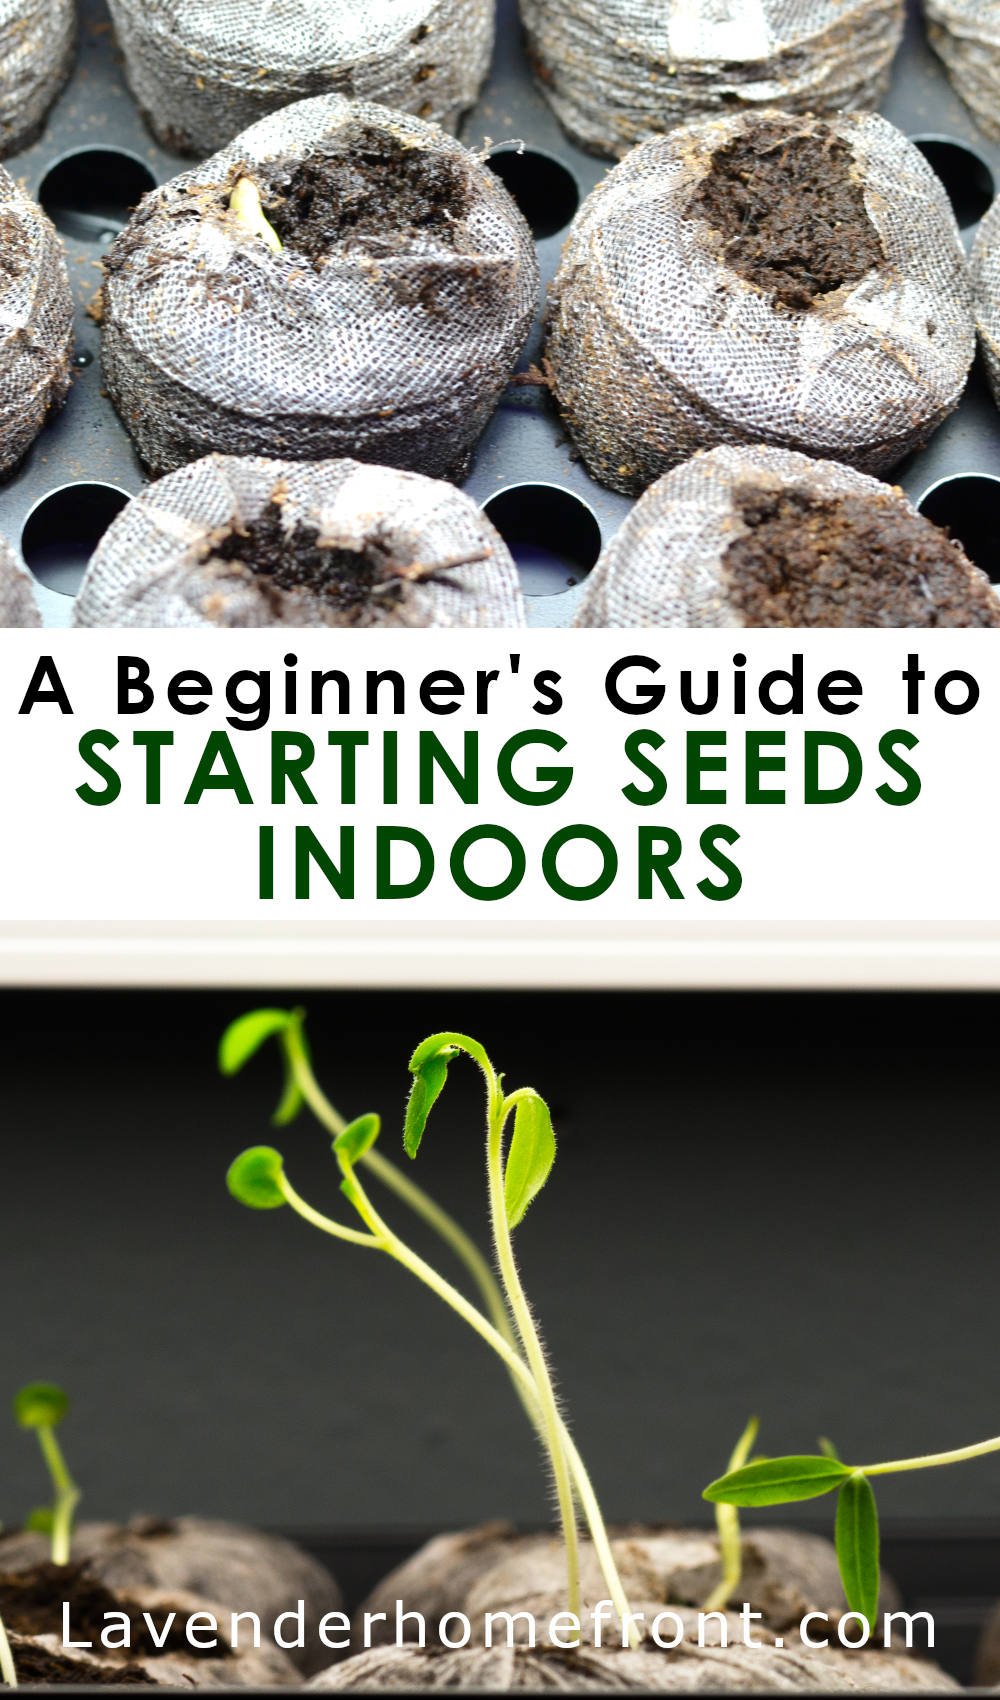 A Beginner's guide to seed starting indoors pinnable image with text overlay.